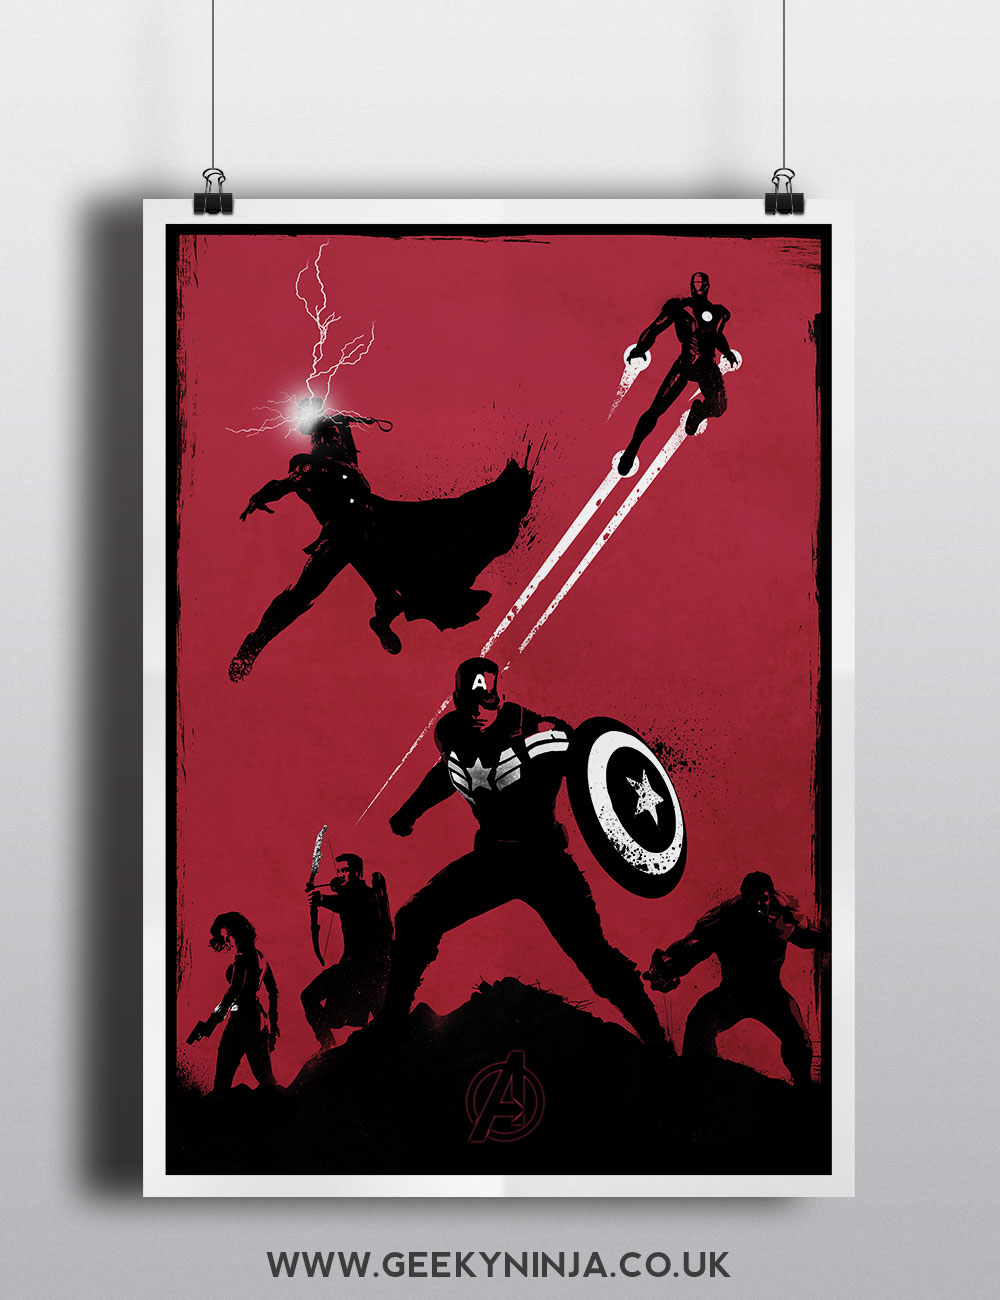 The avengers movie poster minimalist